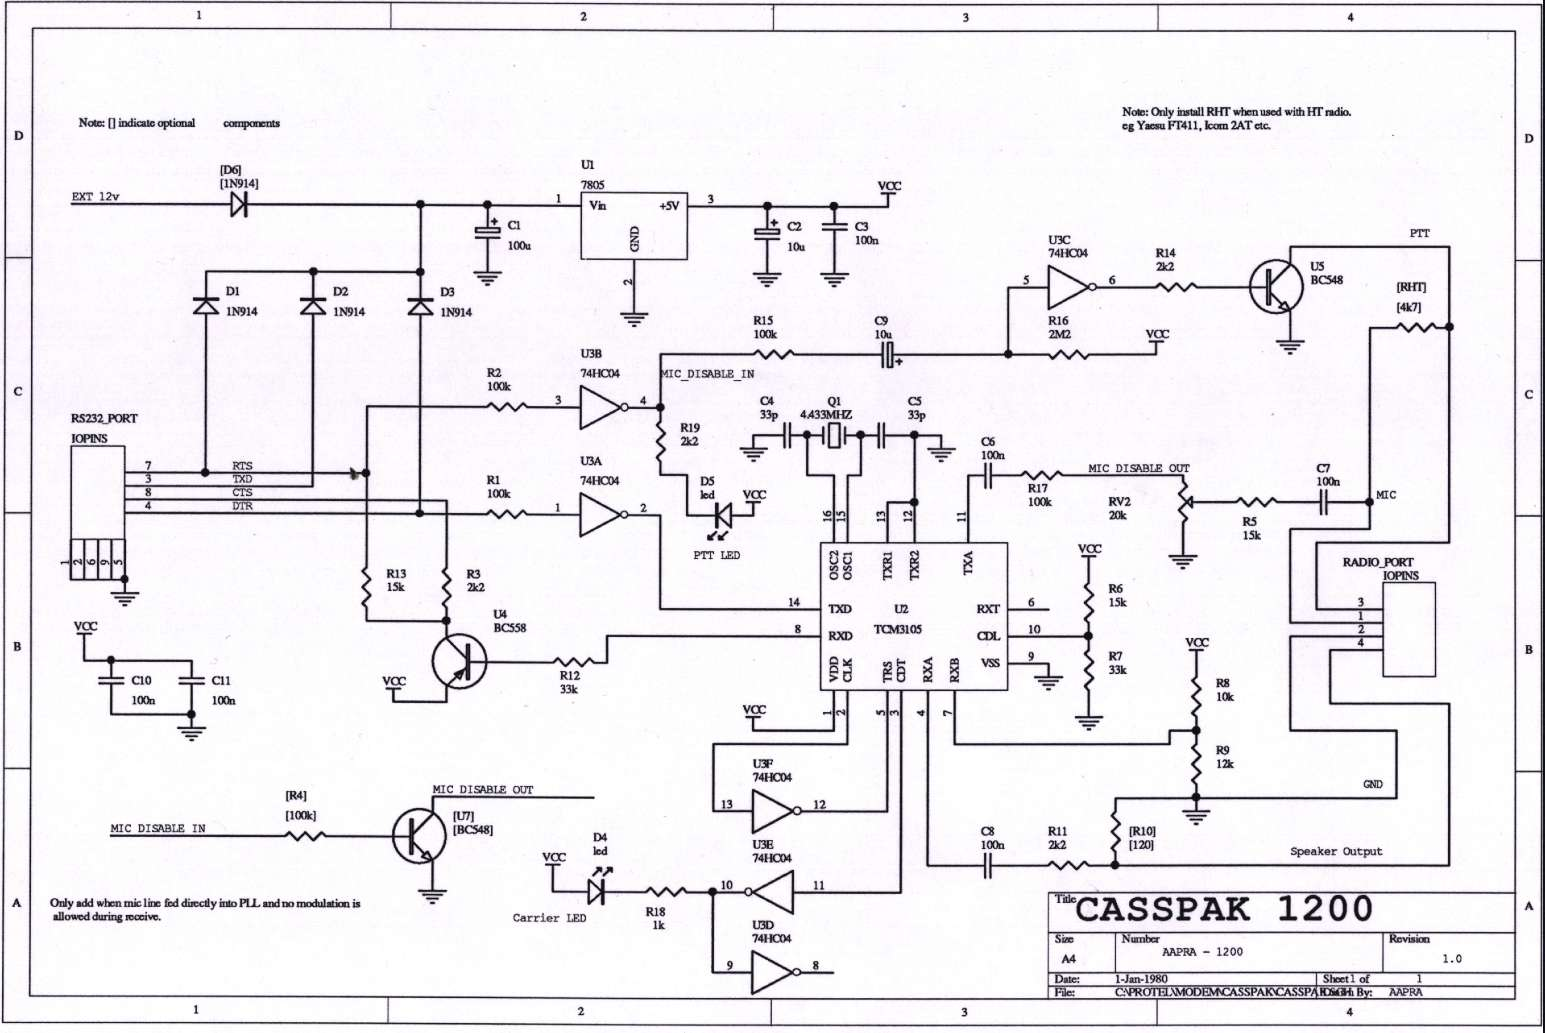 Aapra home page casspak 1200 modem circuit diagram in ps format 46k or pooptronica